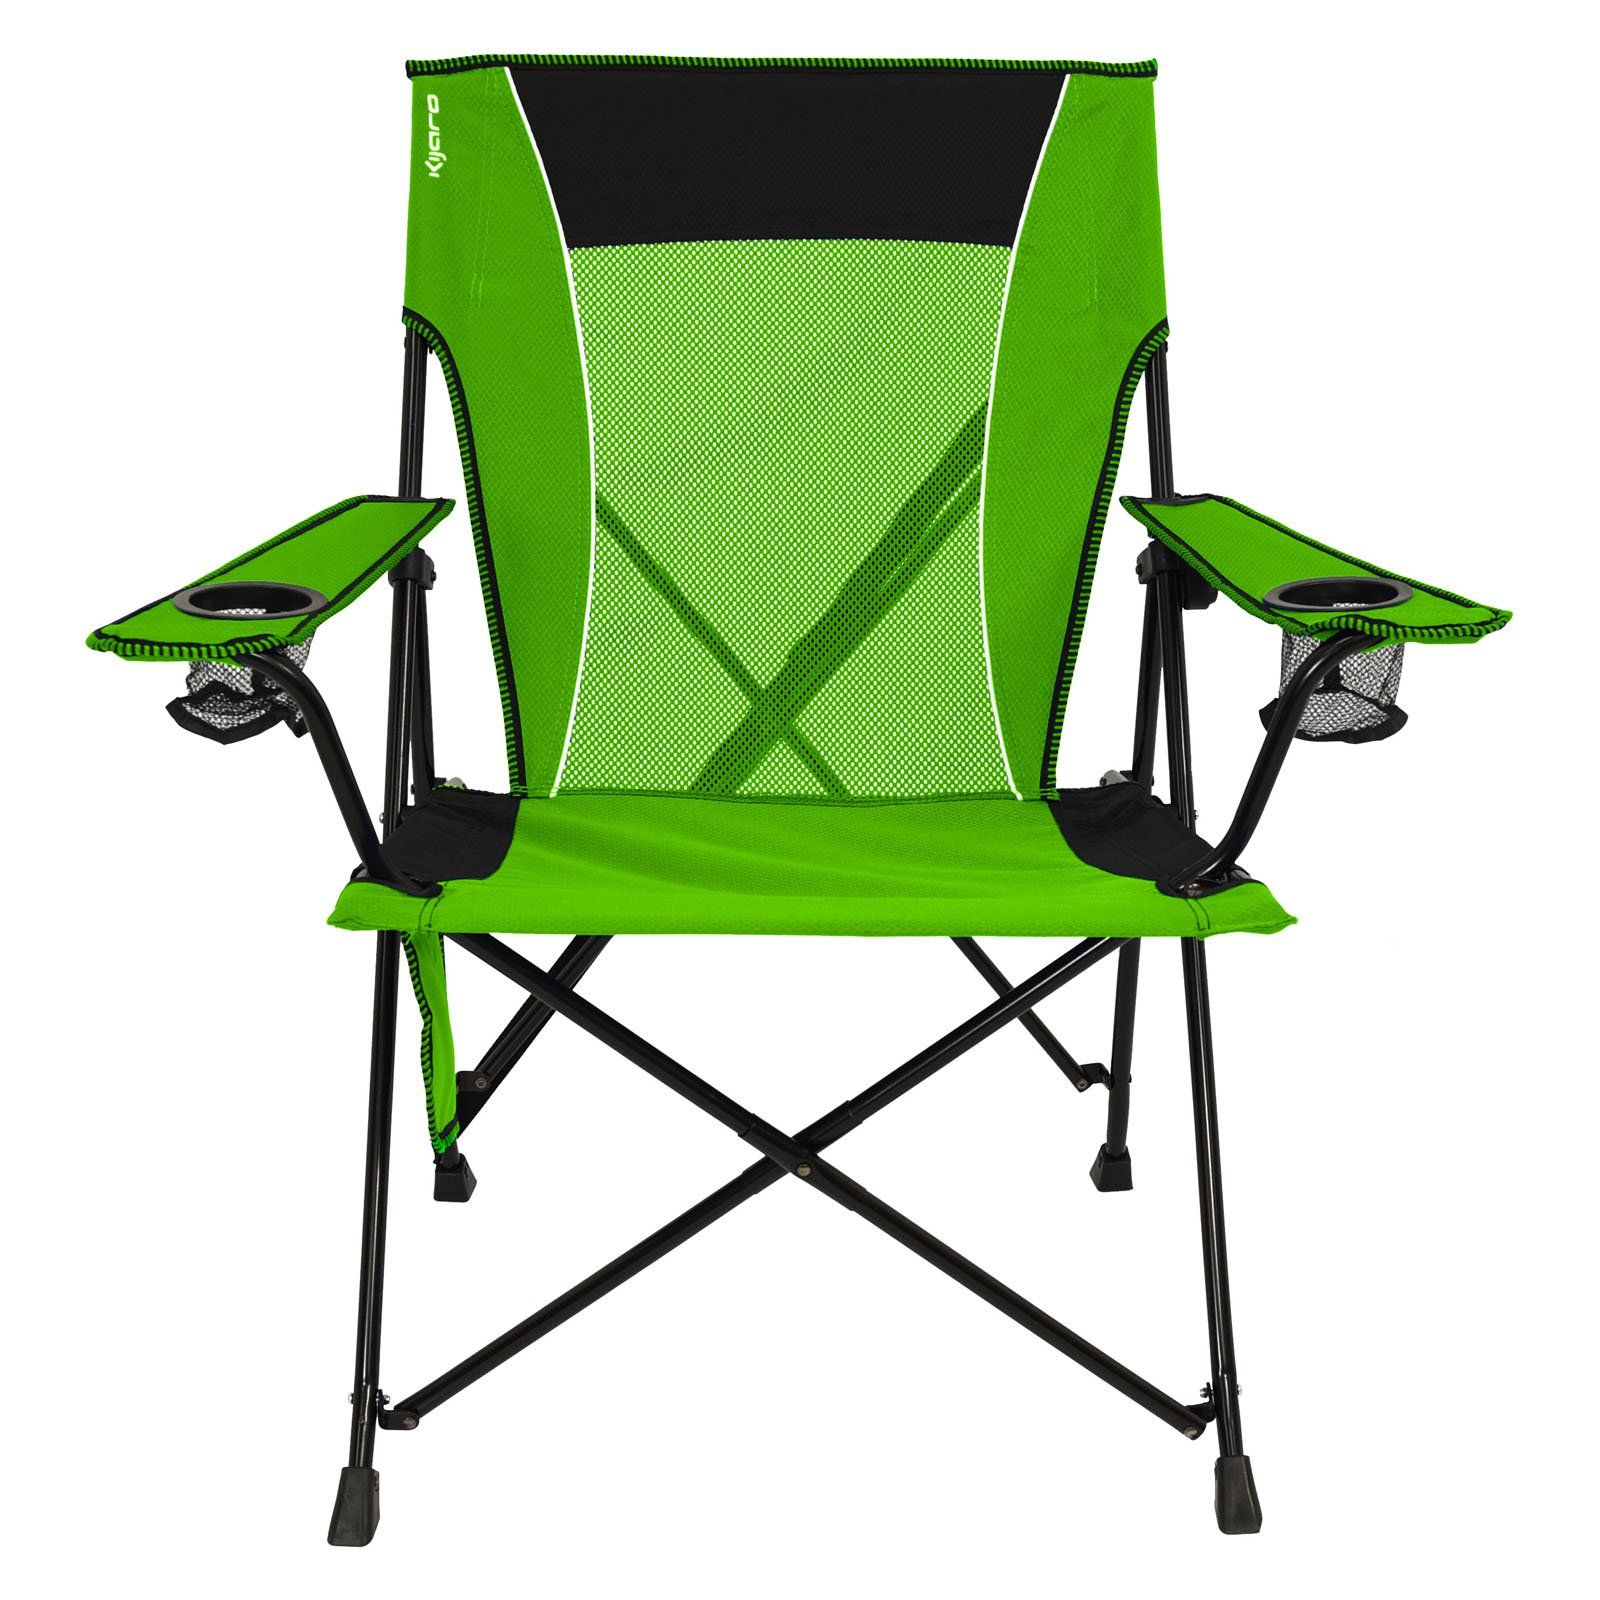 Incredible Outdoor Kijaro Dual Lock Chair Products In 2019 Best Theyellowbook Wood Chair Design Ideas Theyellowbookinfo